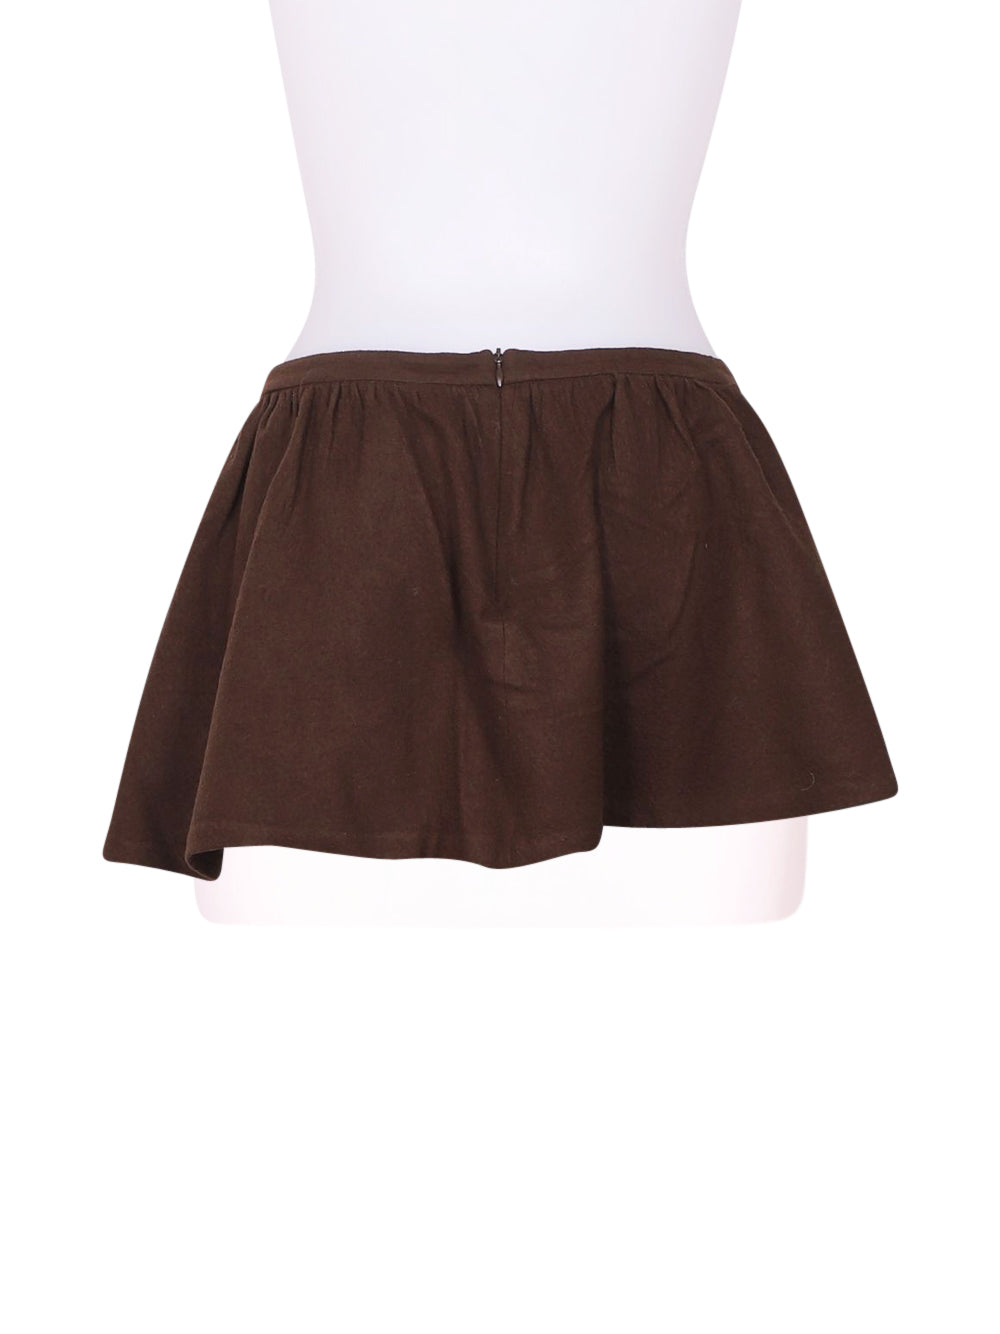 Back photo of Preloved Pinko Brown Woman's skirt - size 8/S